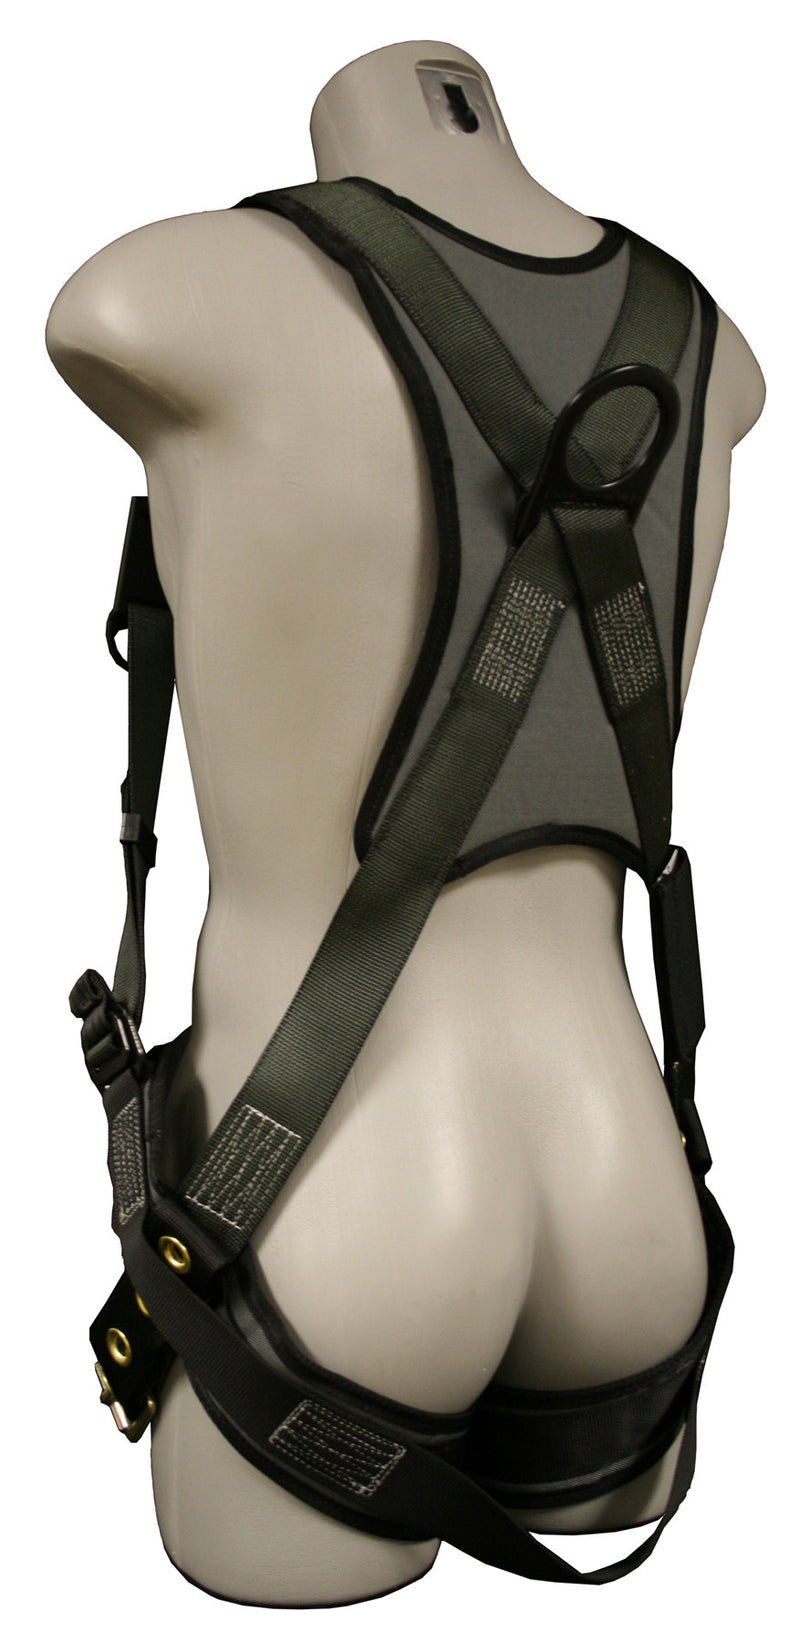 22650 - Stratos Full Body Harness